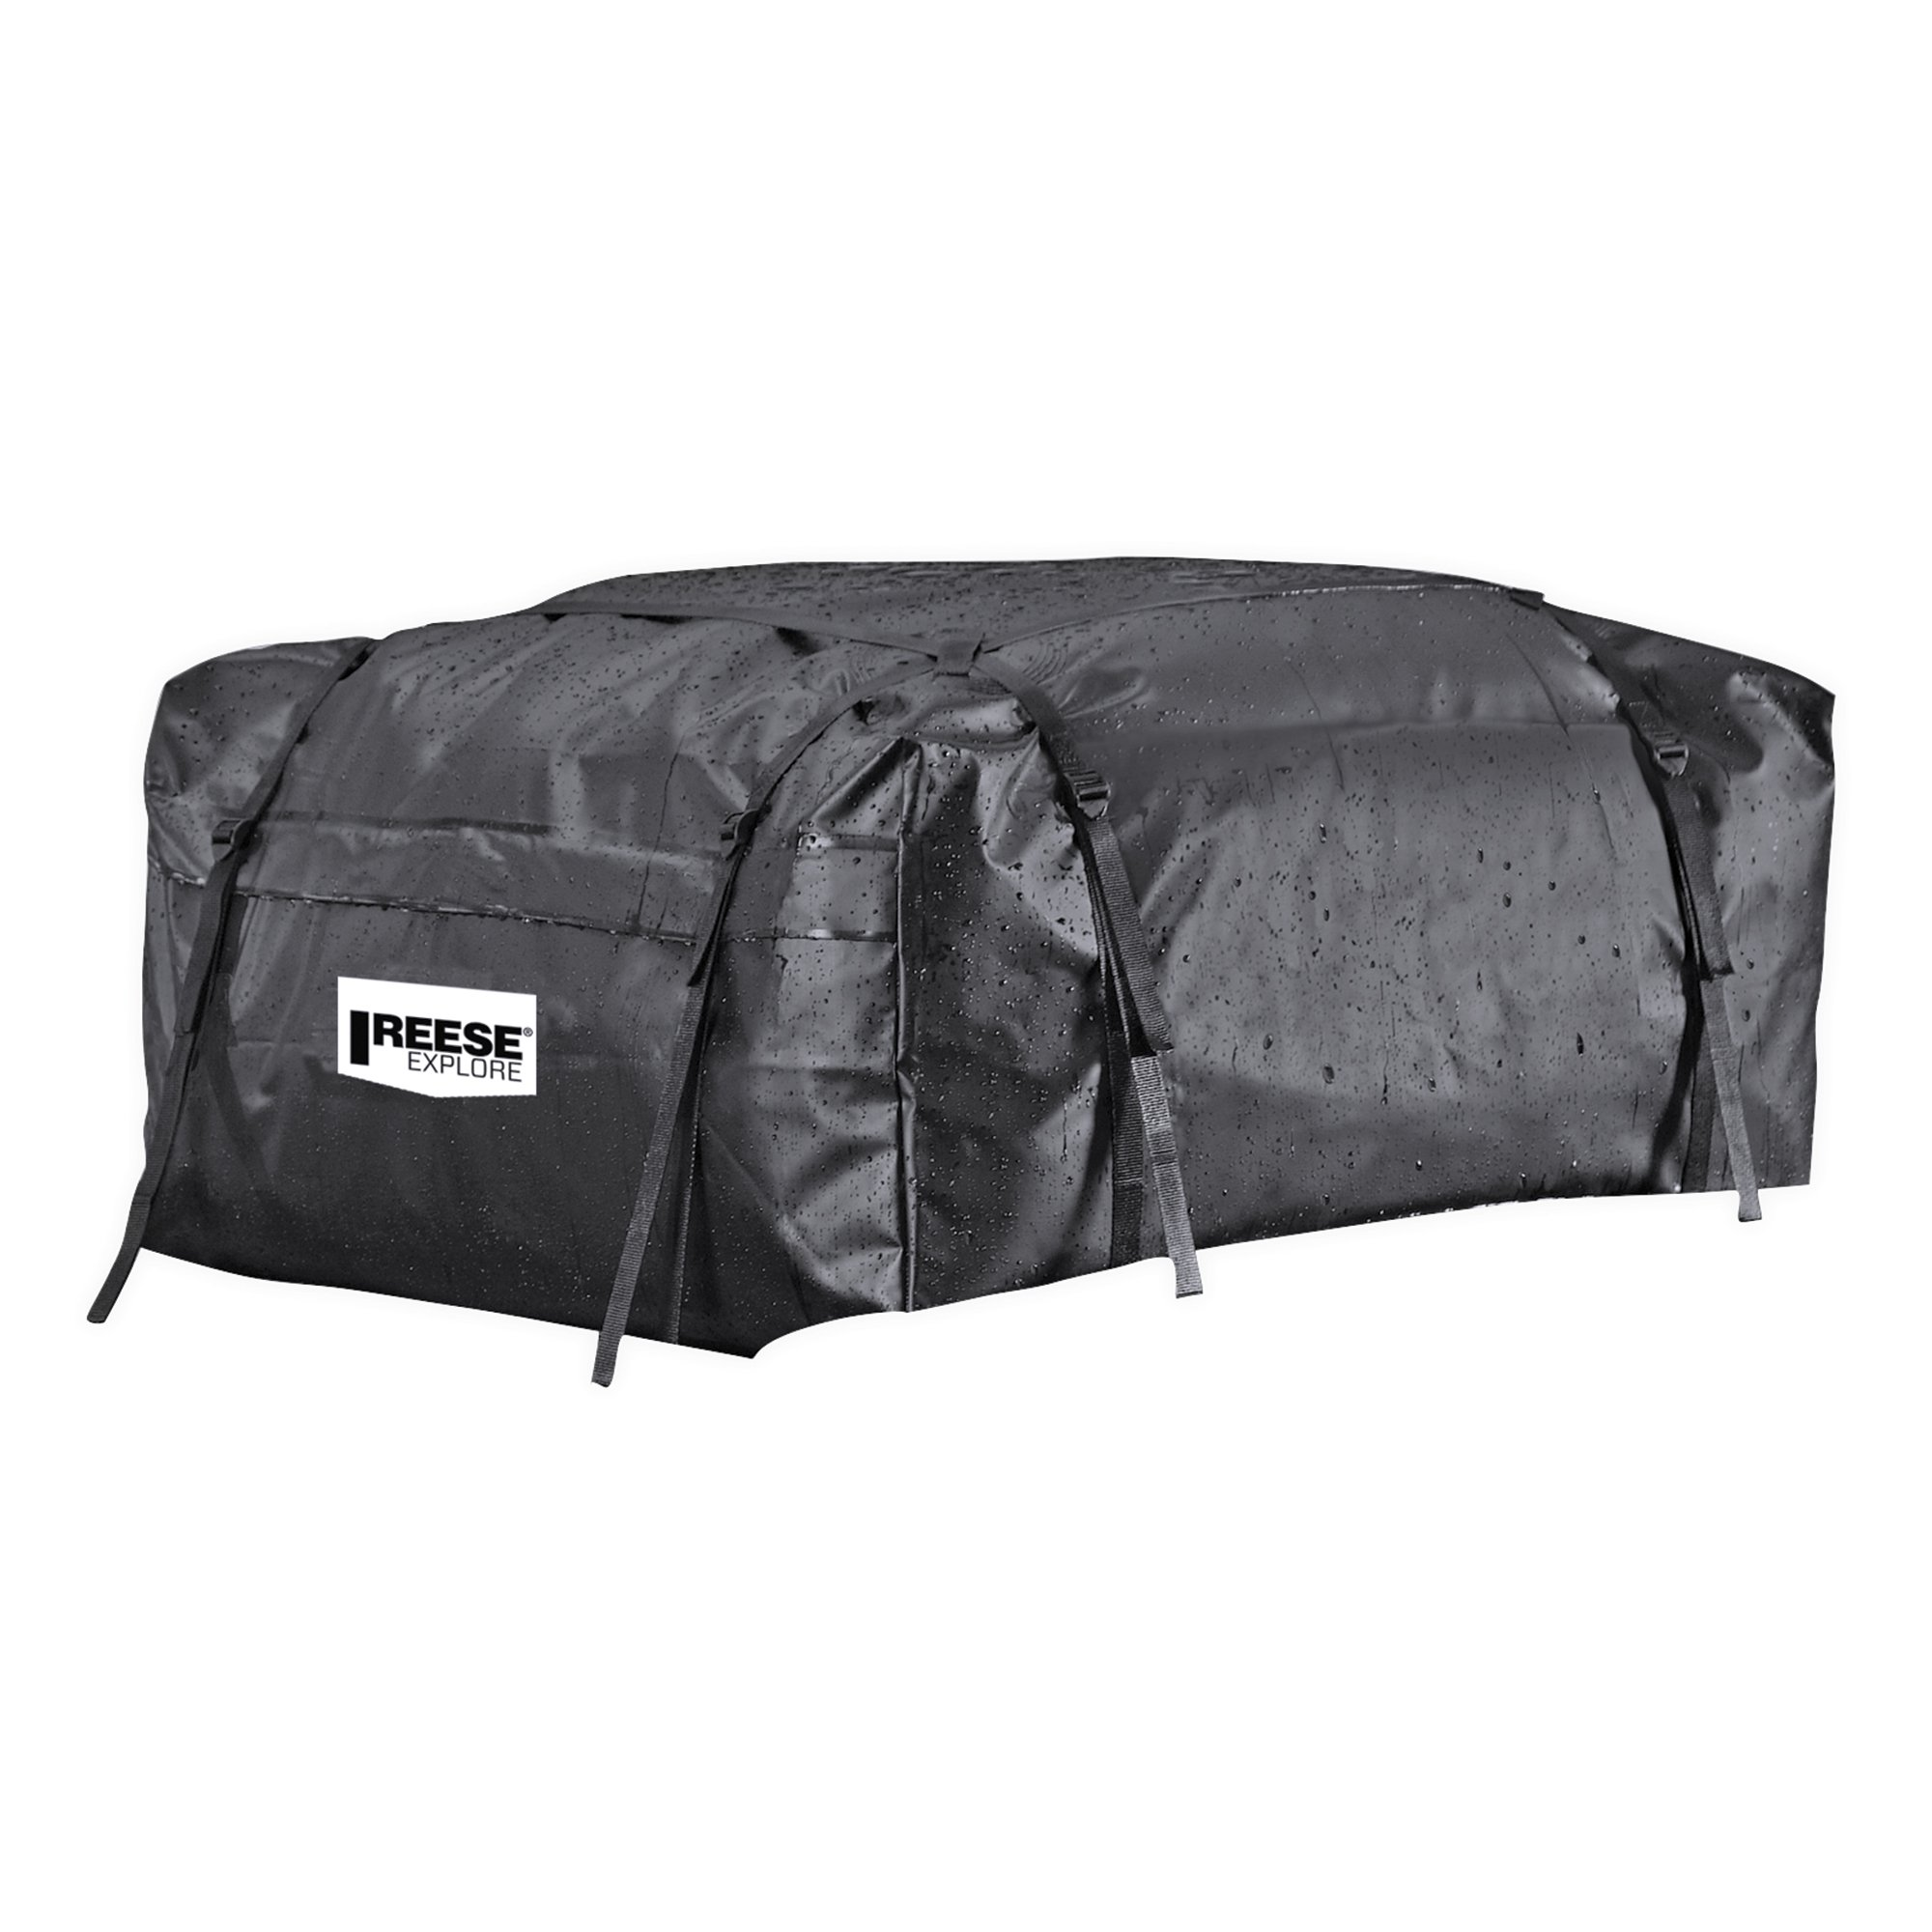 Reese Explore 1041100 Rainproof Car Top Carrier (15 Cubic Feet) by Reese Explore